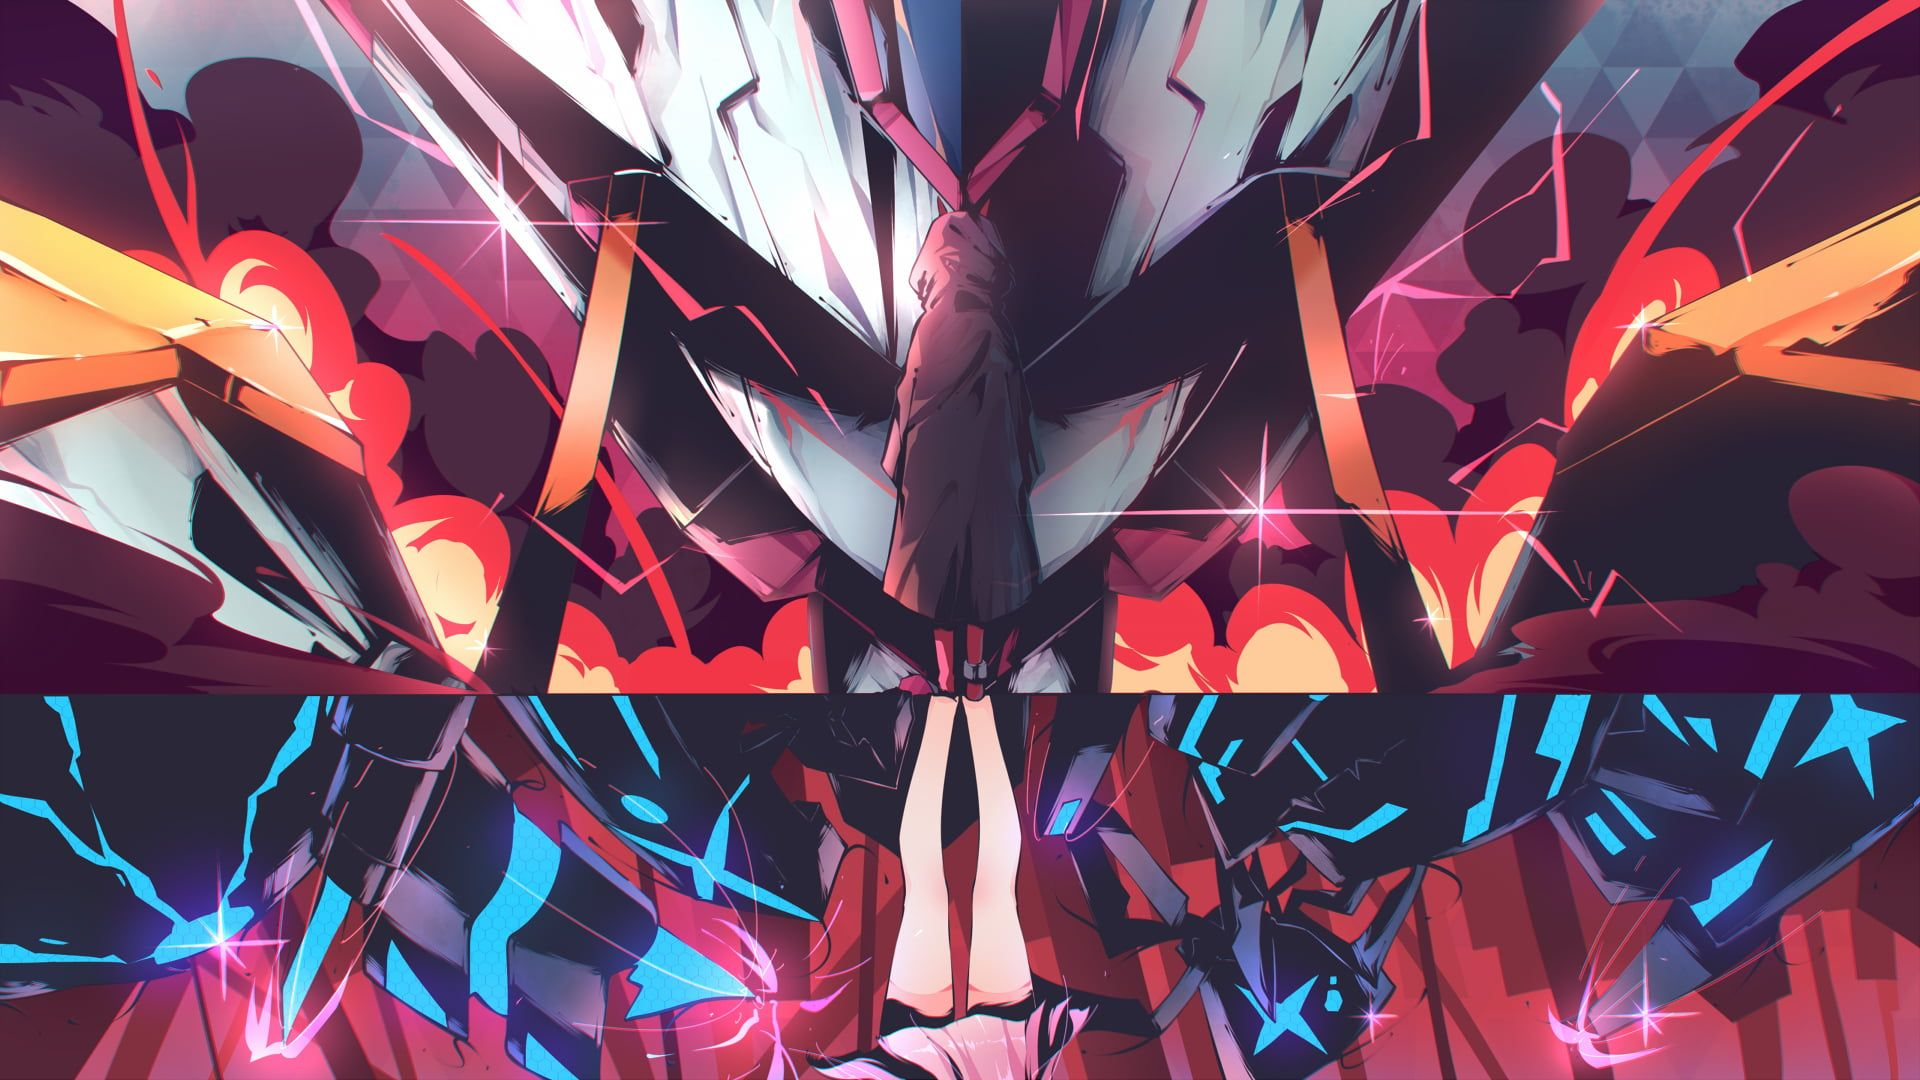 Red White And Orange Abstract Digital Wallpaper Anime Anime Girls Zero Two Zero Two Darling In The Darling In The Franxx Digital Wallpaper Live Wallpapers